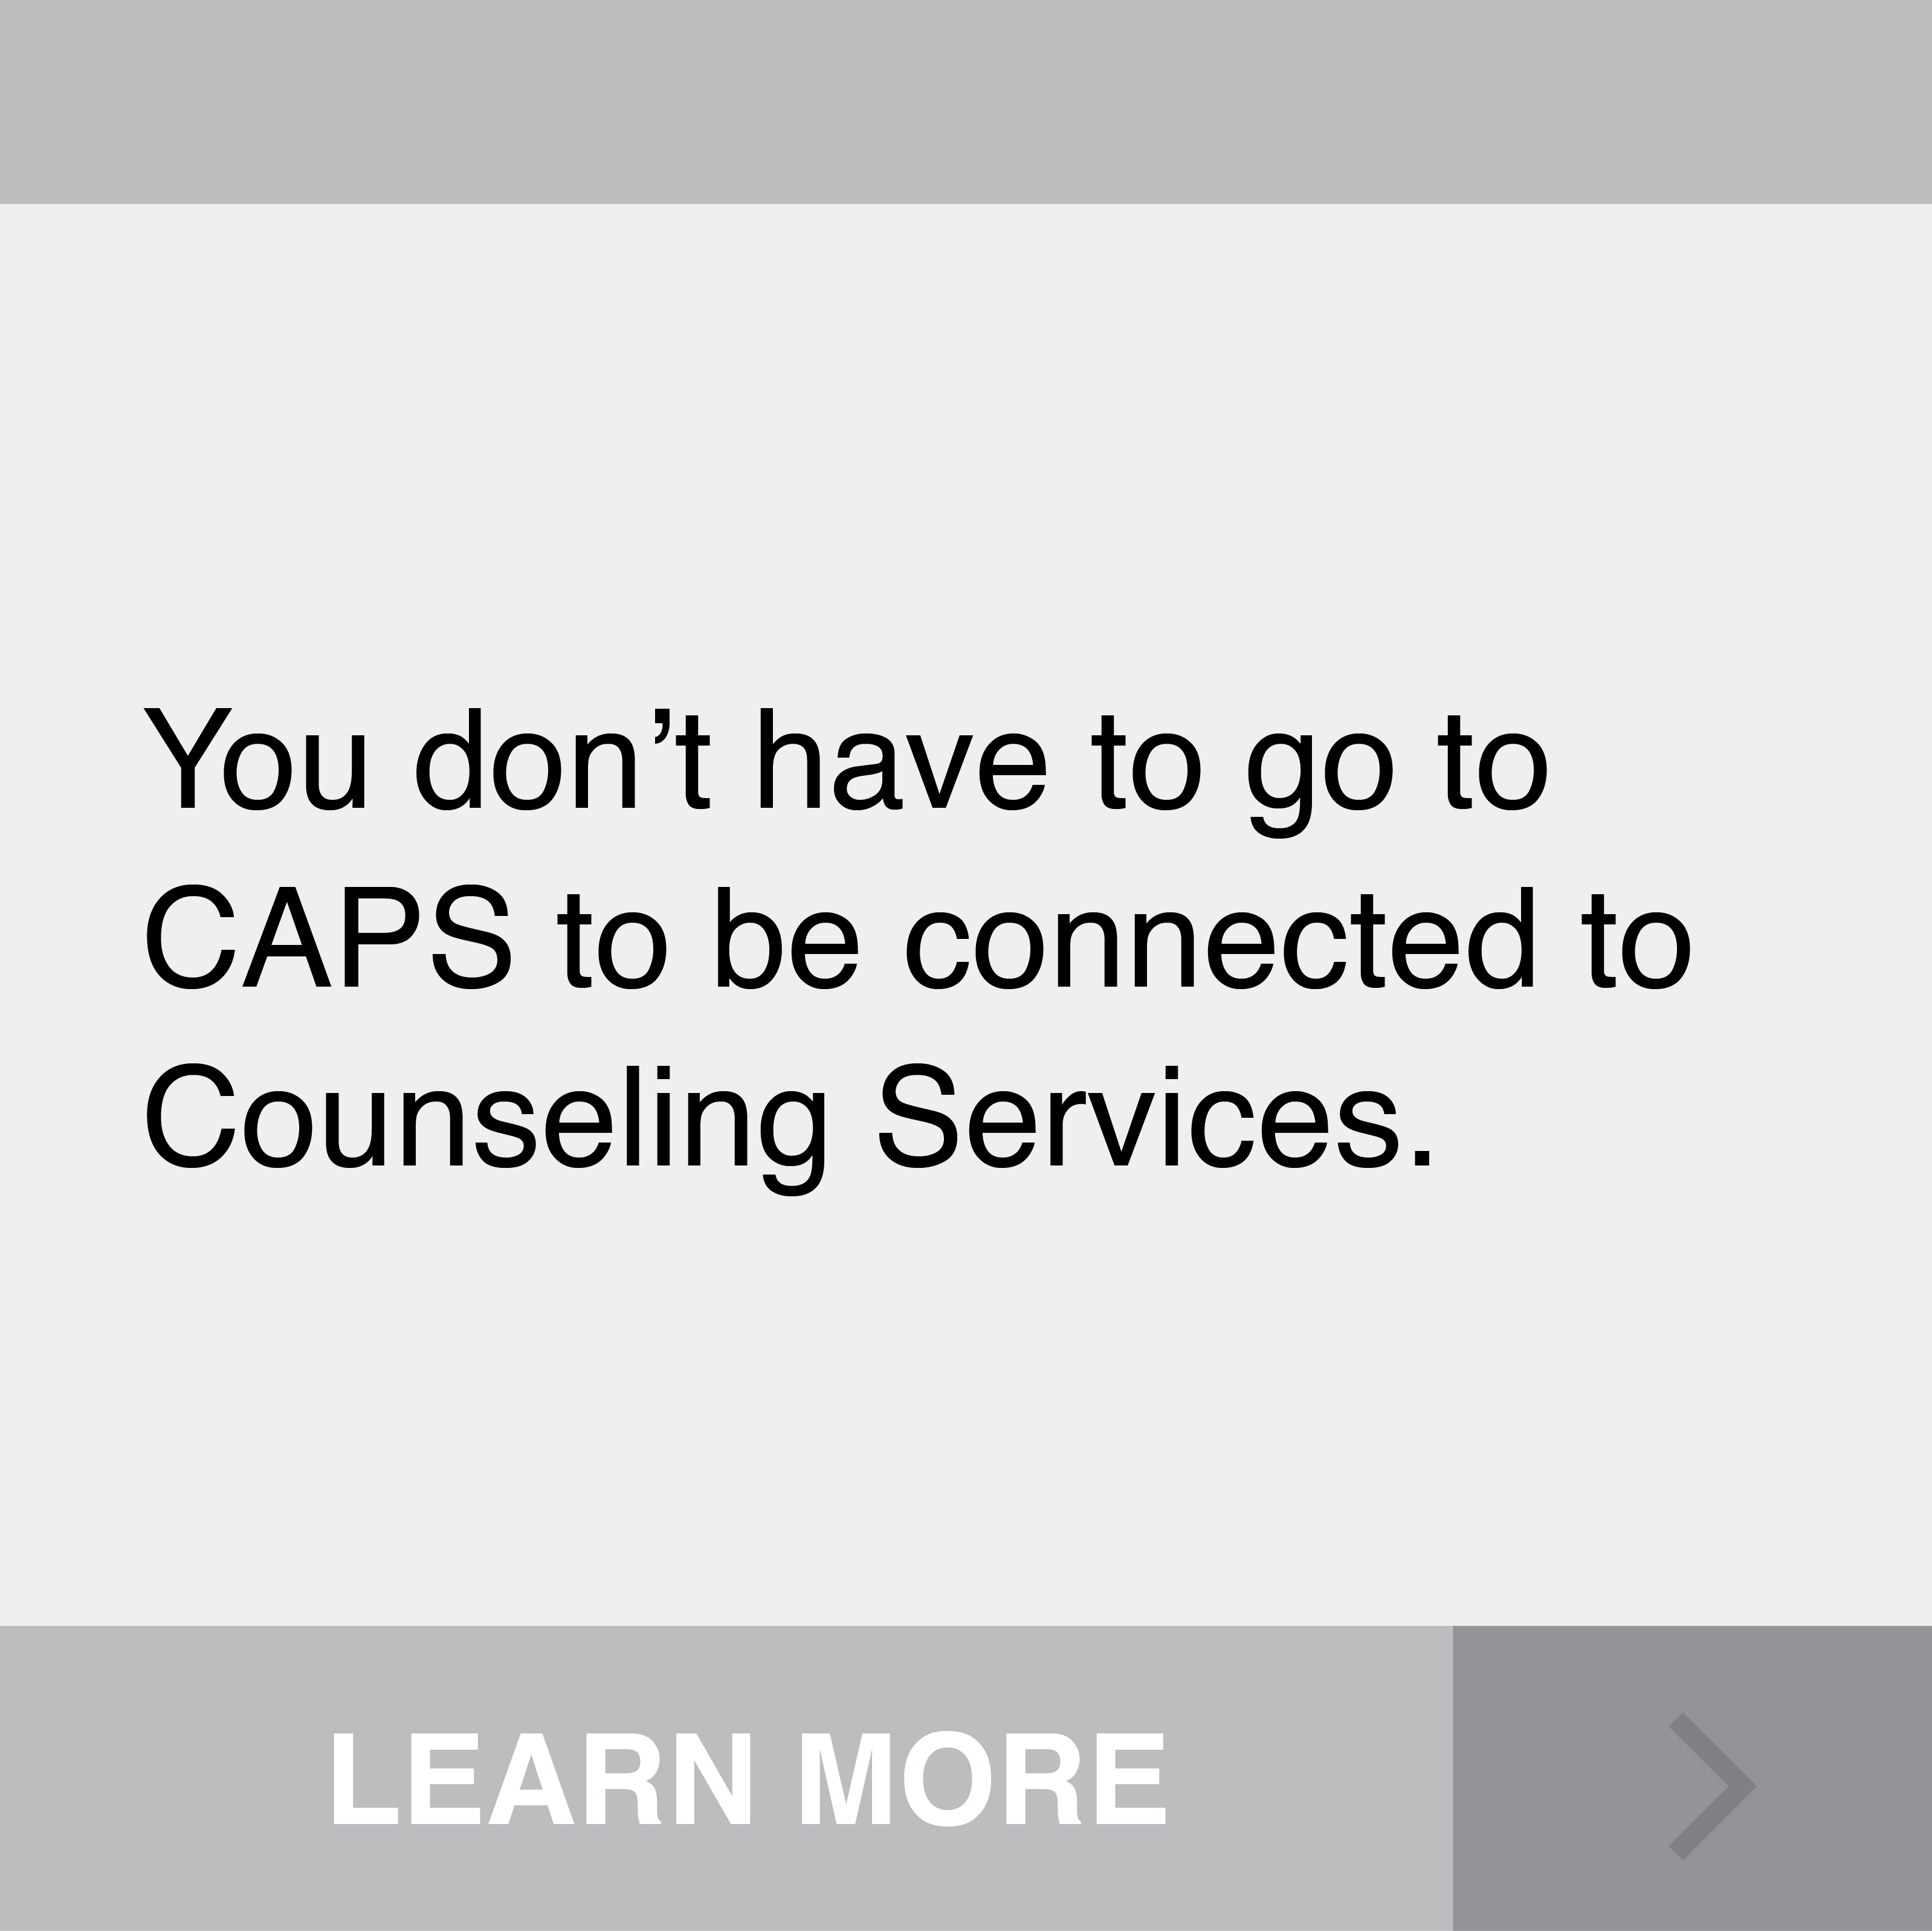 You don't have to go to CAPS to be connected to Counseling Services. Click to Learn More.